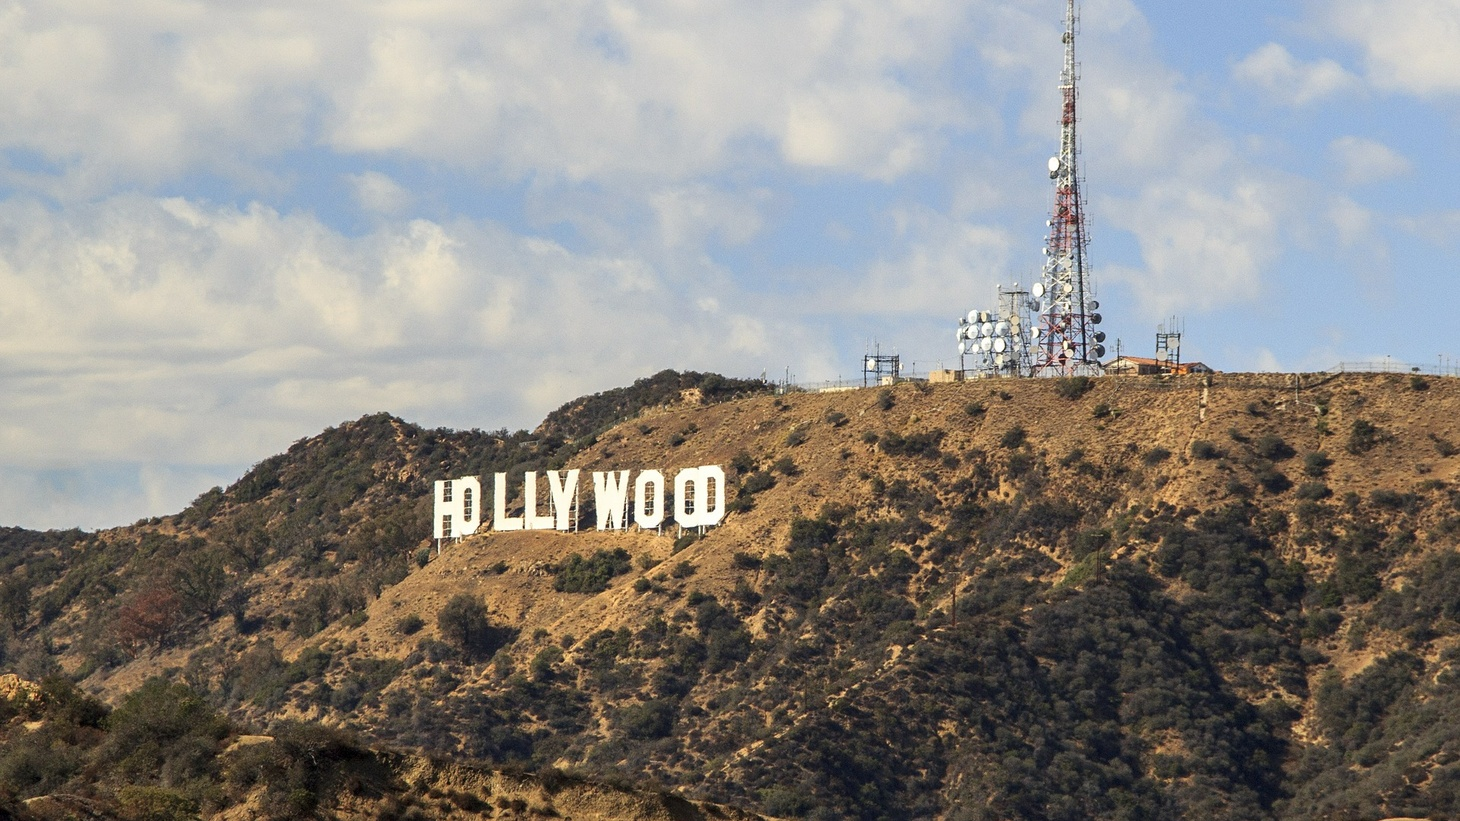 The Writers Guild lost some leverage during the pandemic. But they still managed to make a deal with the film and TV studios. The deal allows some gains for writers.